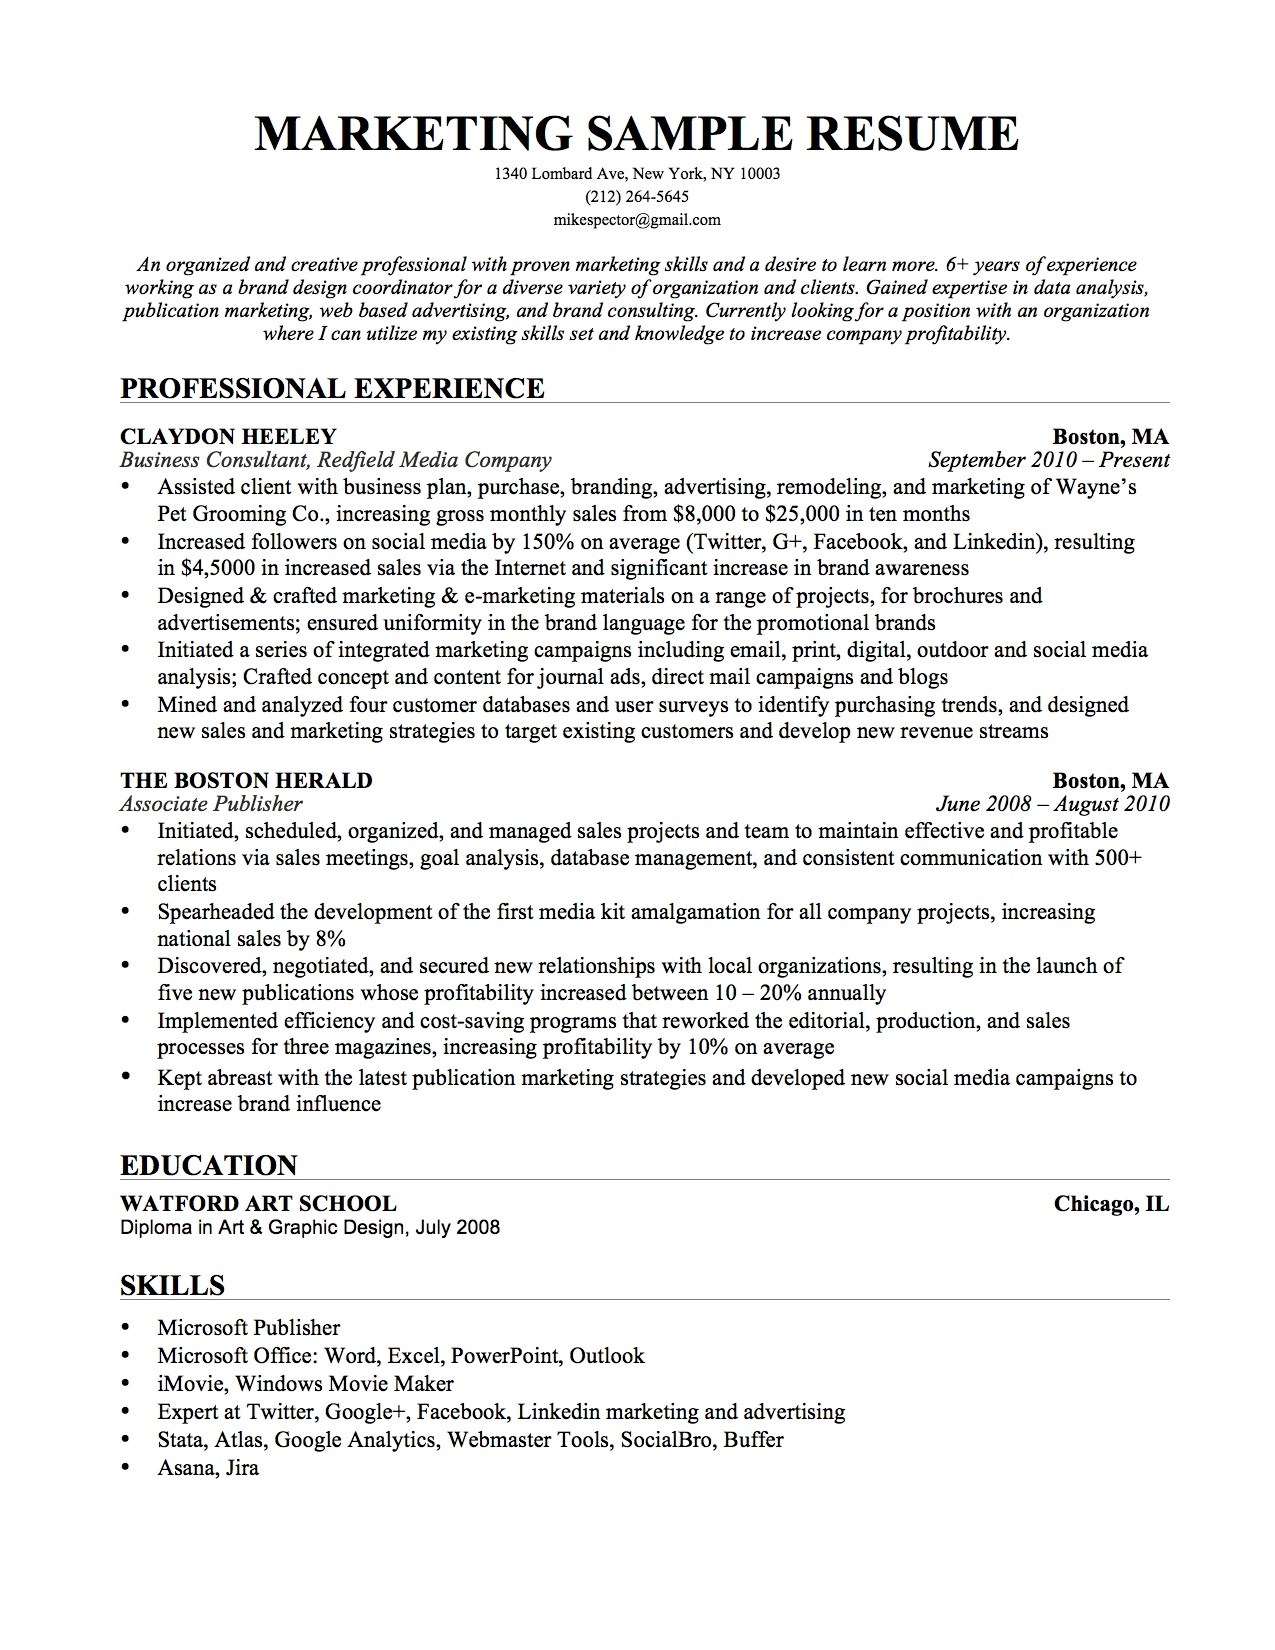 resume sample entry level event coordinator professional resume resume sample entry level event coordinator event coordinator resume samples jobhero sample marketing resume examples